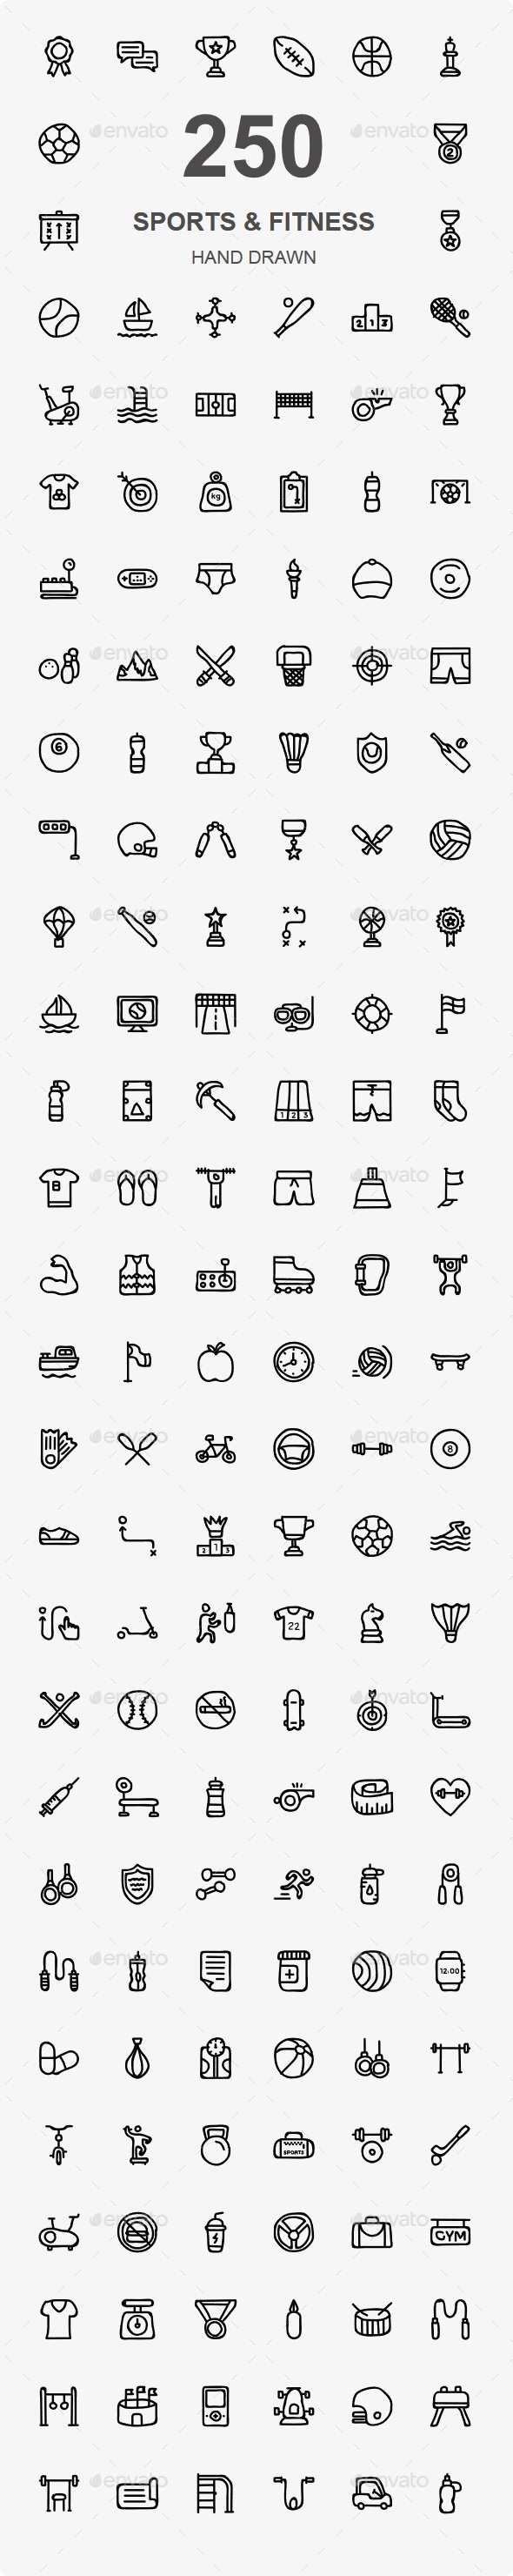 Sports and Fitness Hand Drawn - Web Icons